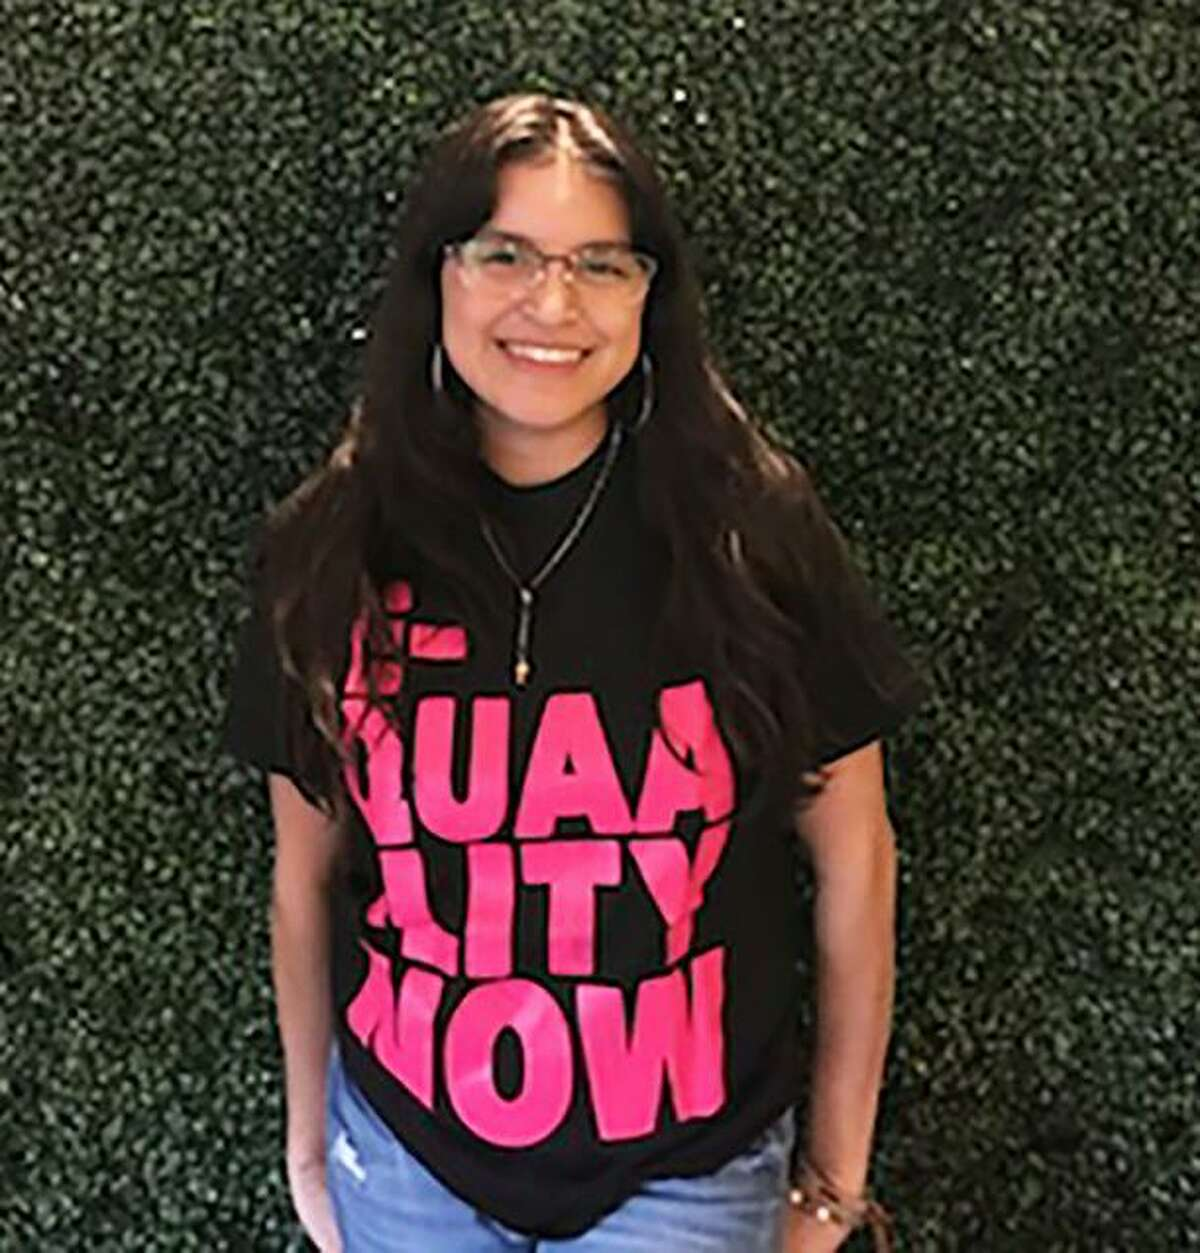 Natalie Romero, a Bellaire High School graduate, was injured during a deadly rally in Charlottesville, Va., in August 2017.